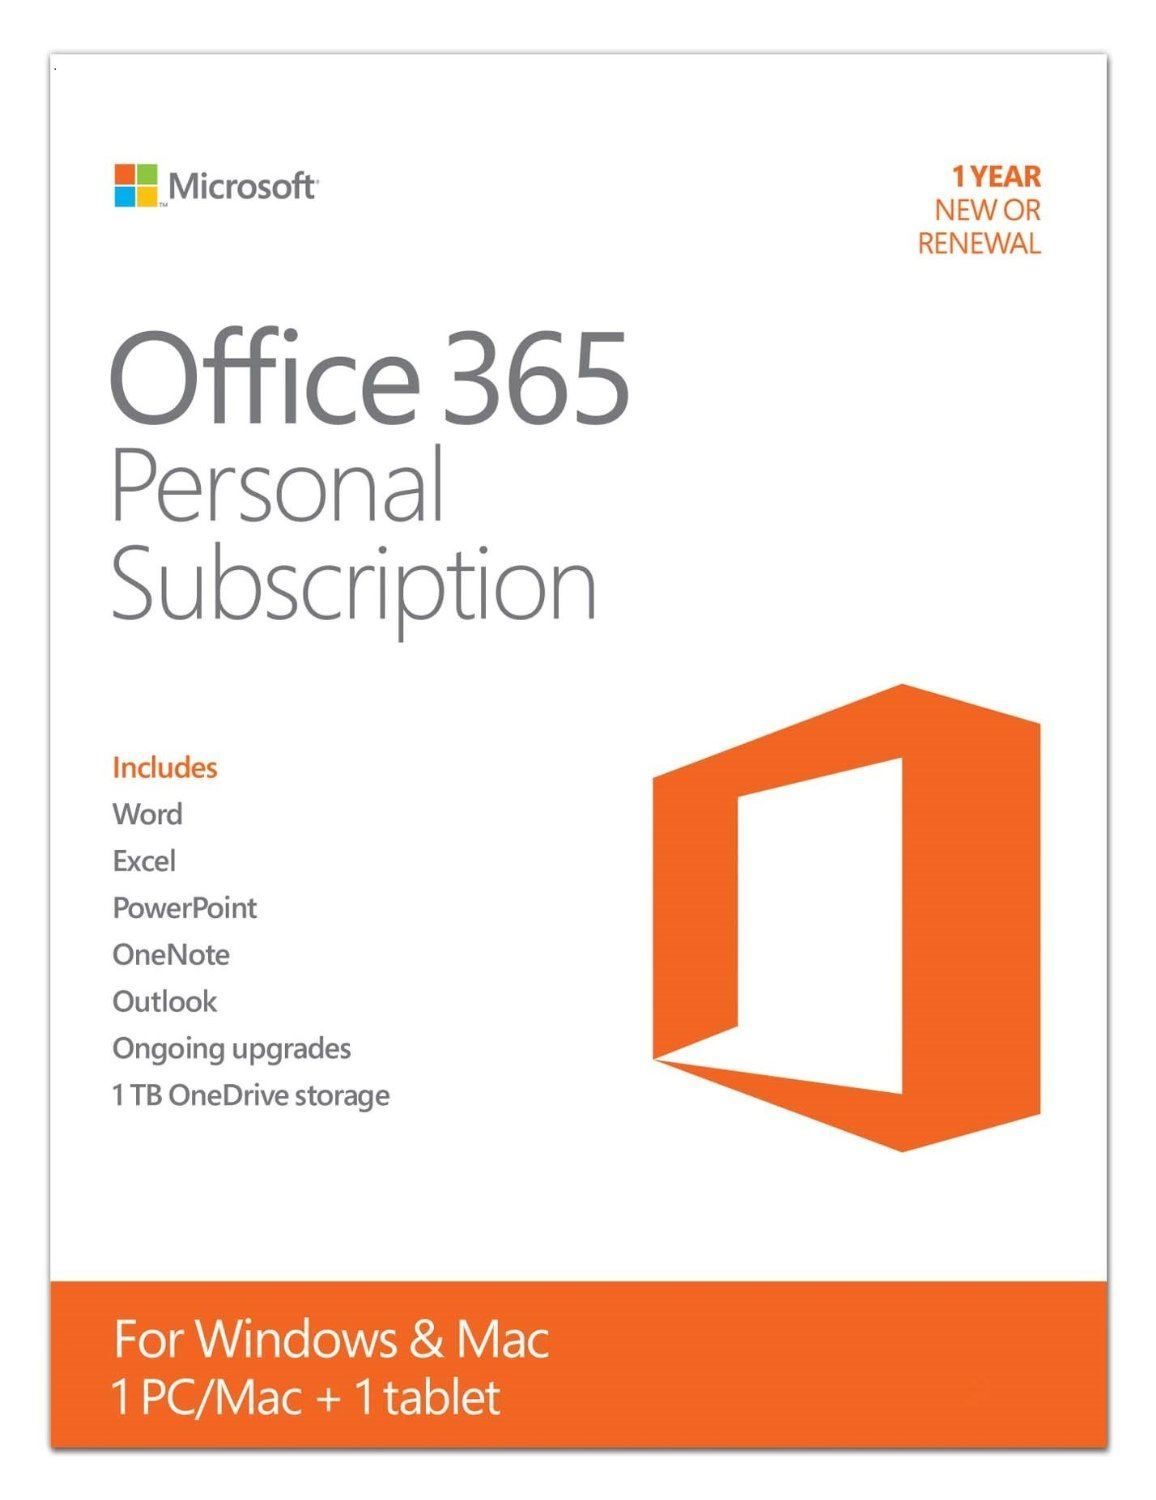 sign into office 365 personal